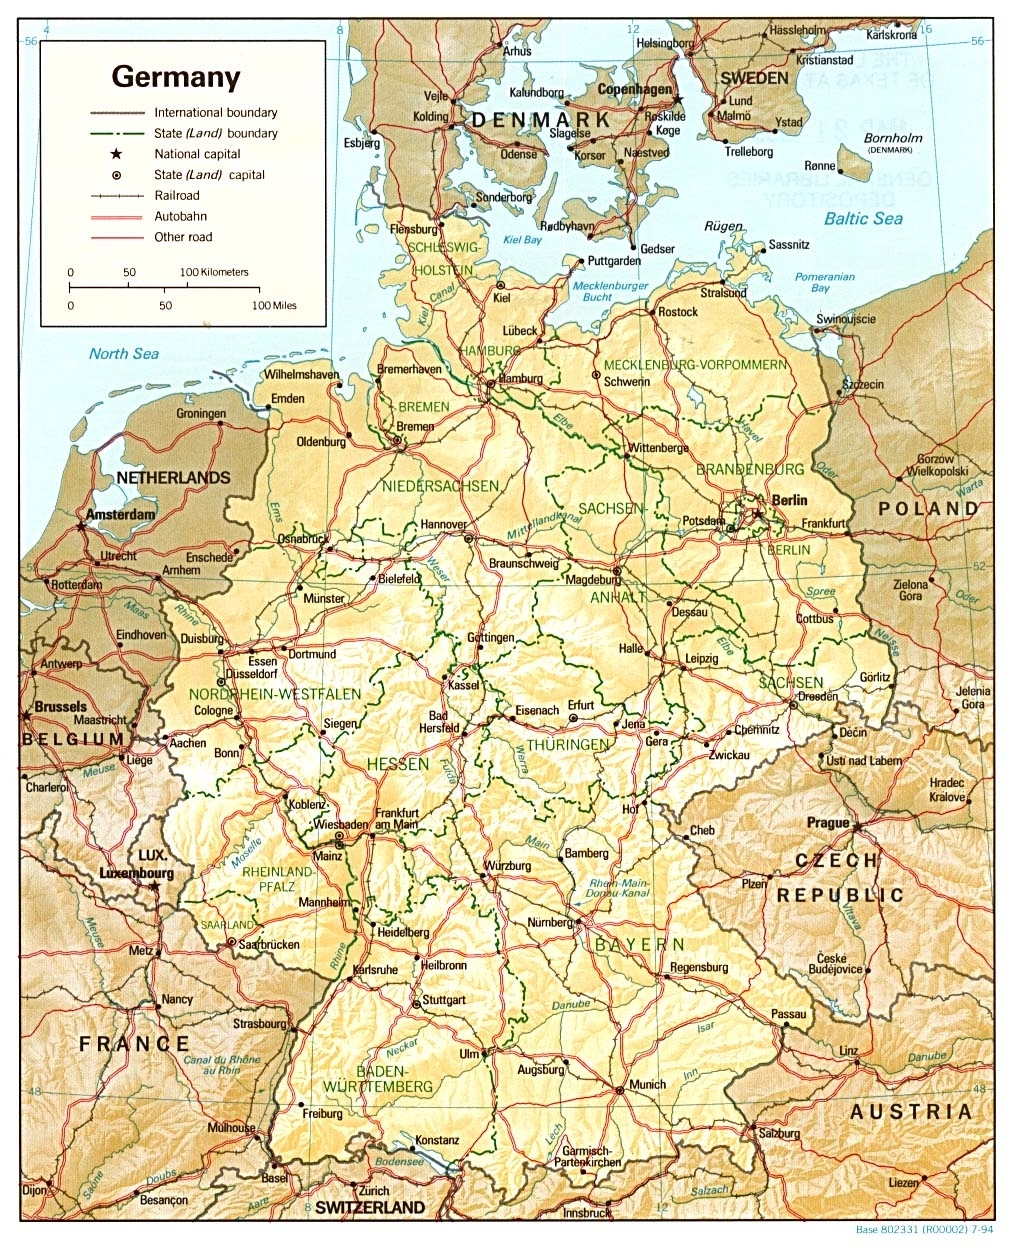 Download Free Germany Maps intended for Germany Map Download